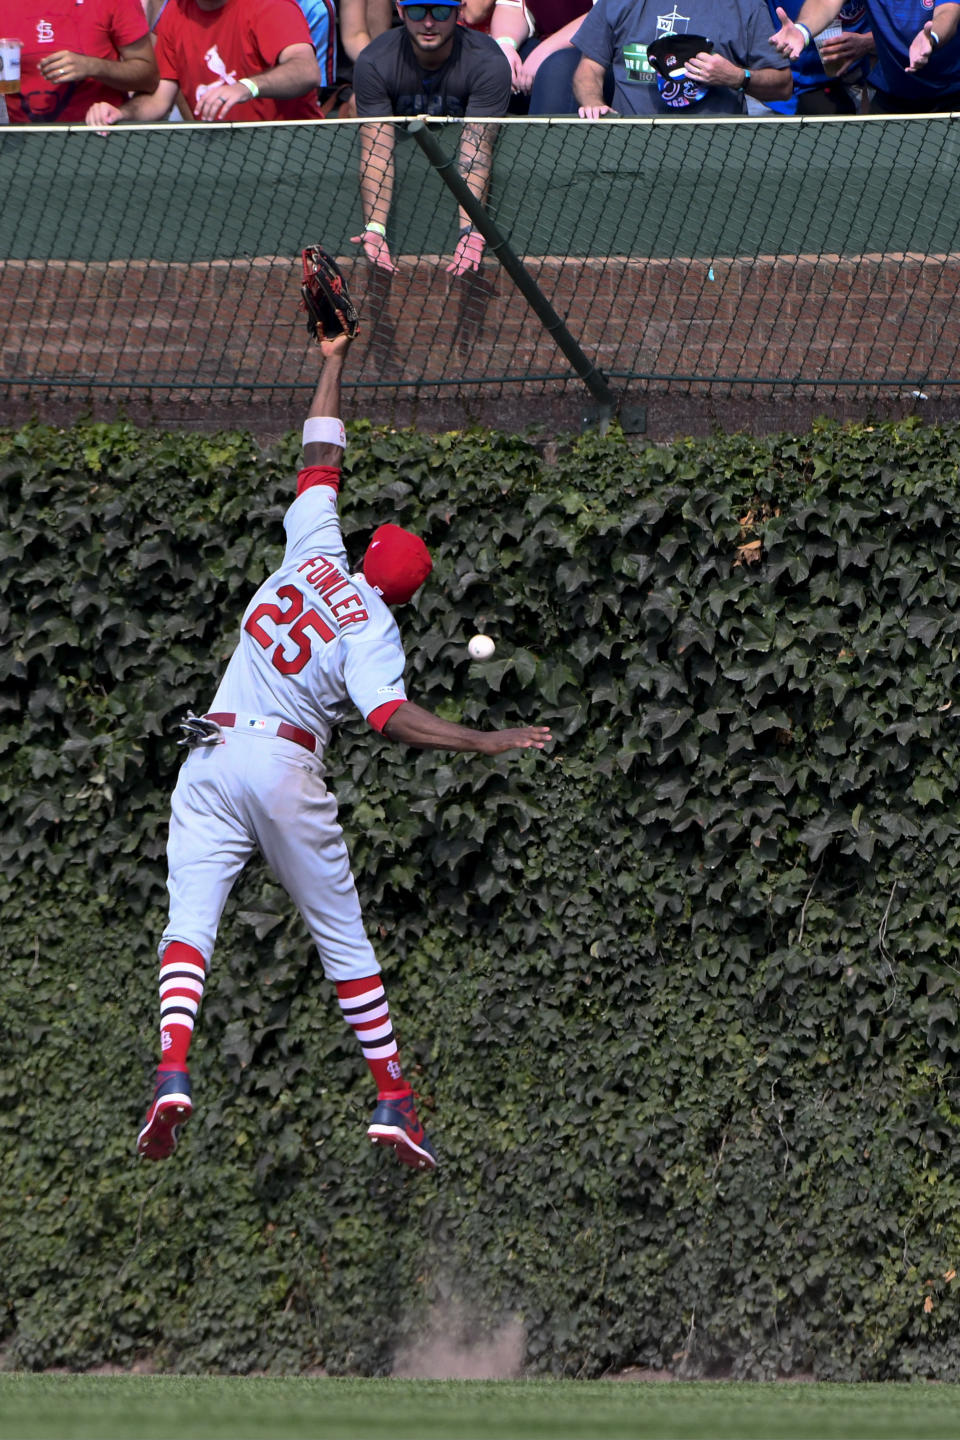 St. Louis Cardinals right fielder Dexter Fowler (25) tries to make a play on the ball hit by Chicago Cubs' Nicholas Castellanos during the fifth inning of a baseball game Friday, Sept. 20, 2019, in Chicago. (AP Photo/Matt Marton)